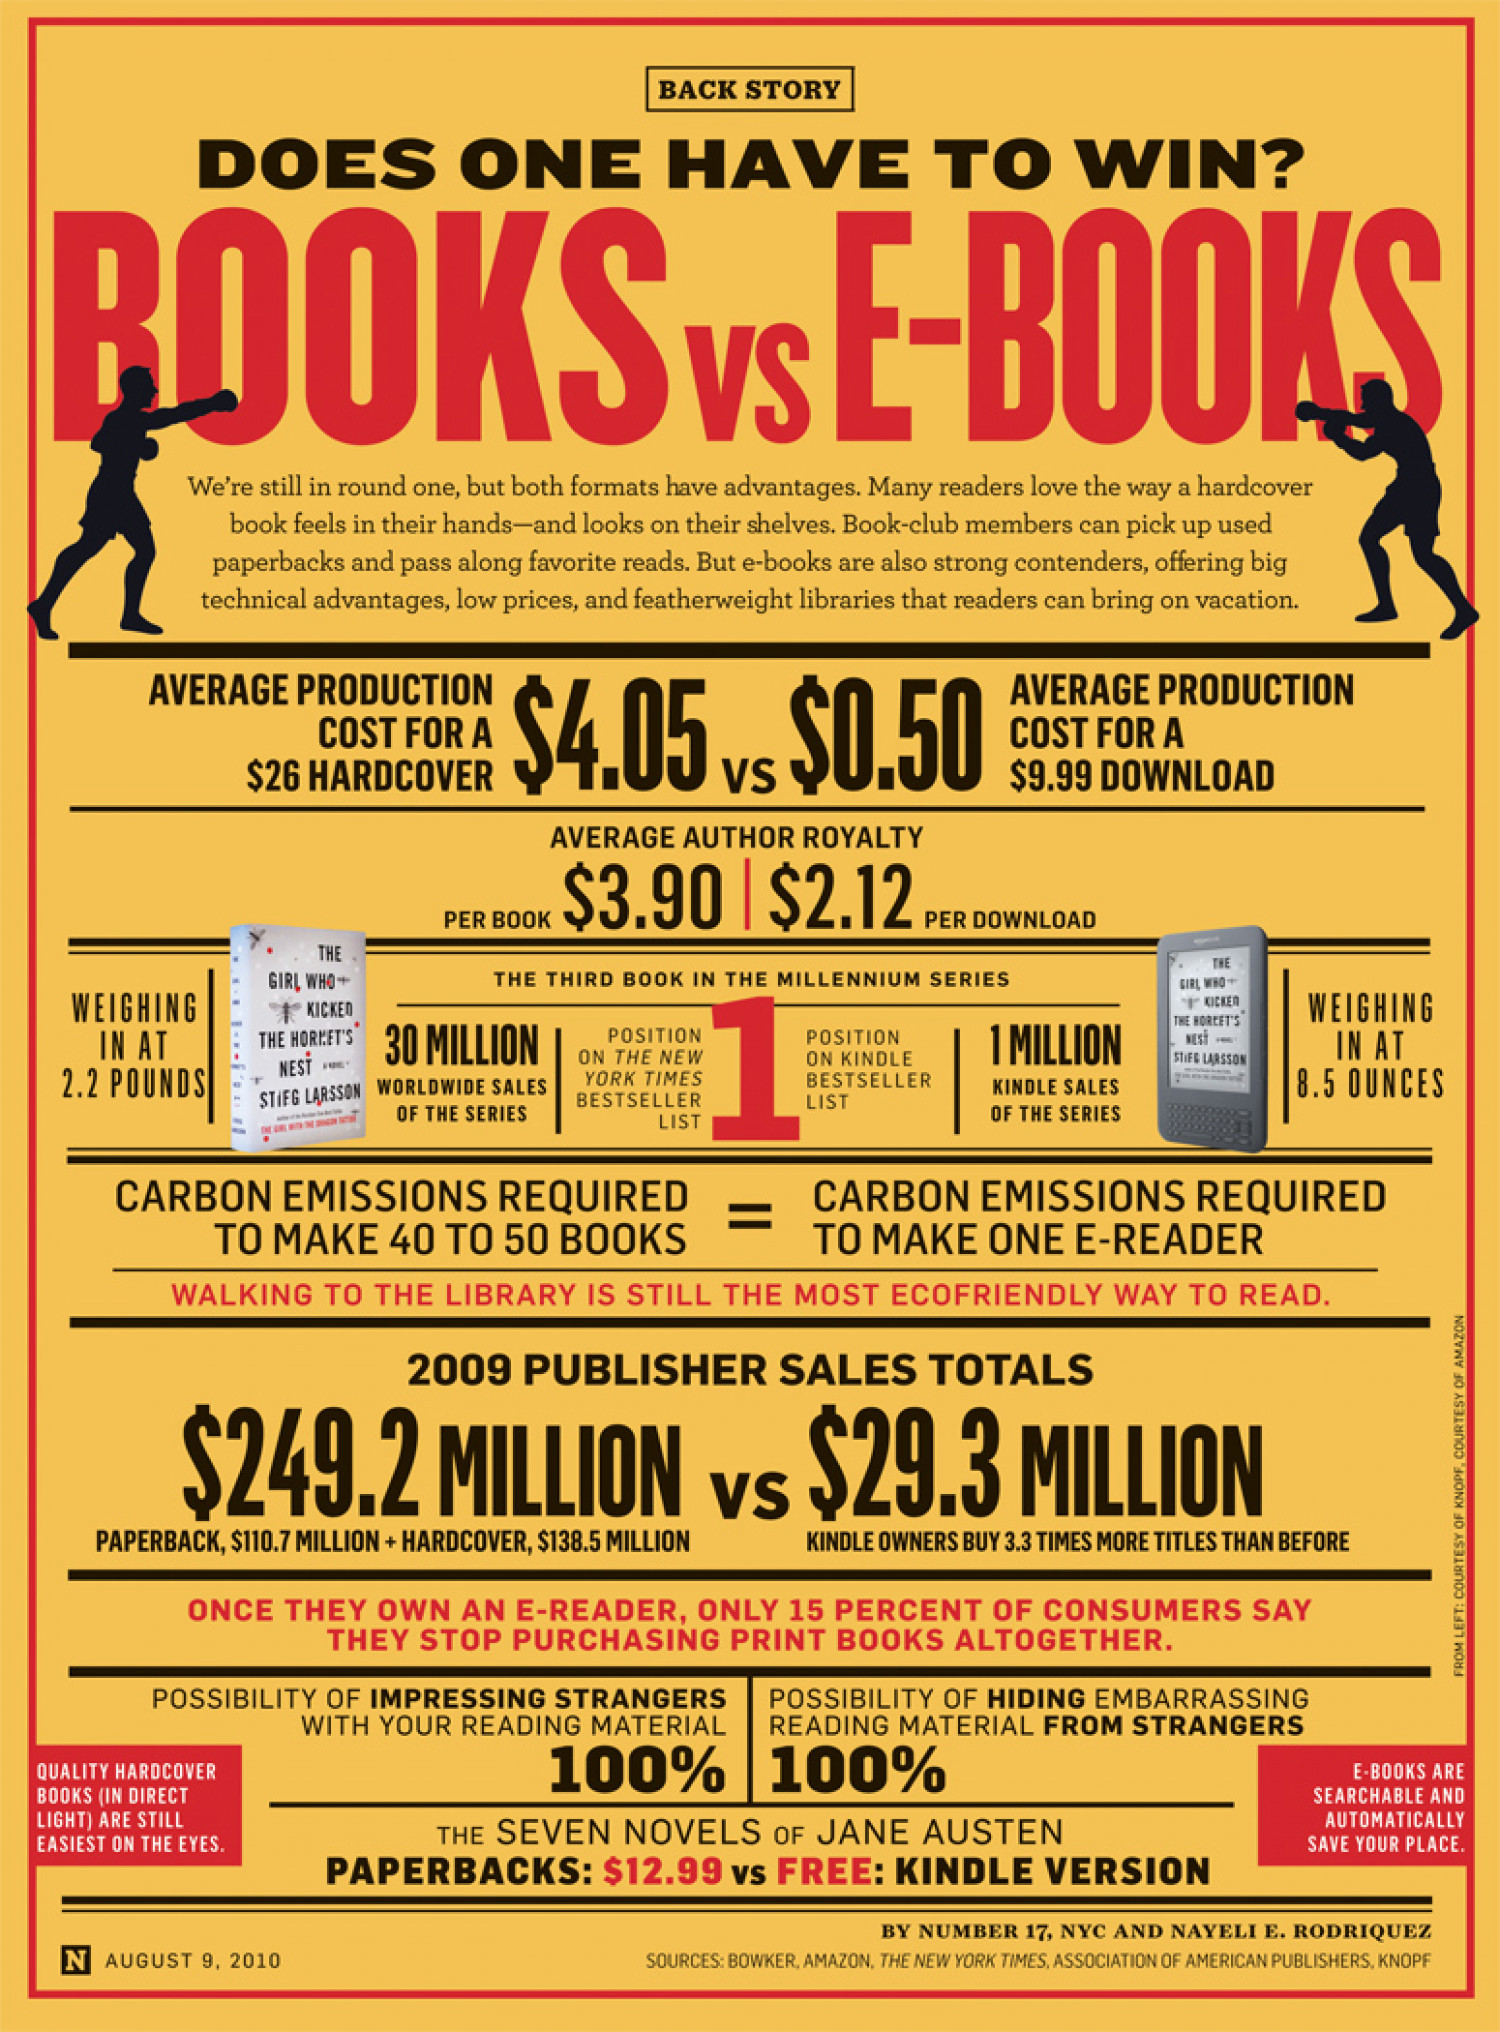 Books vs E-Books Infographic